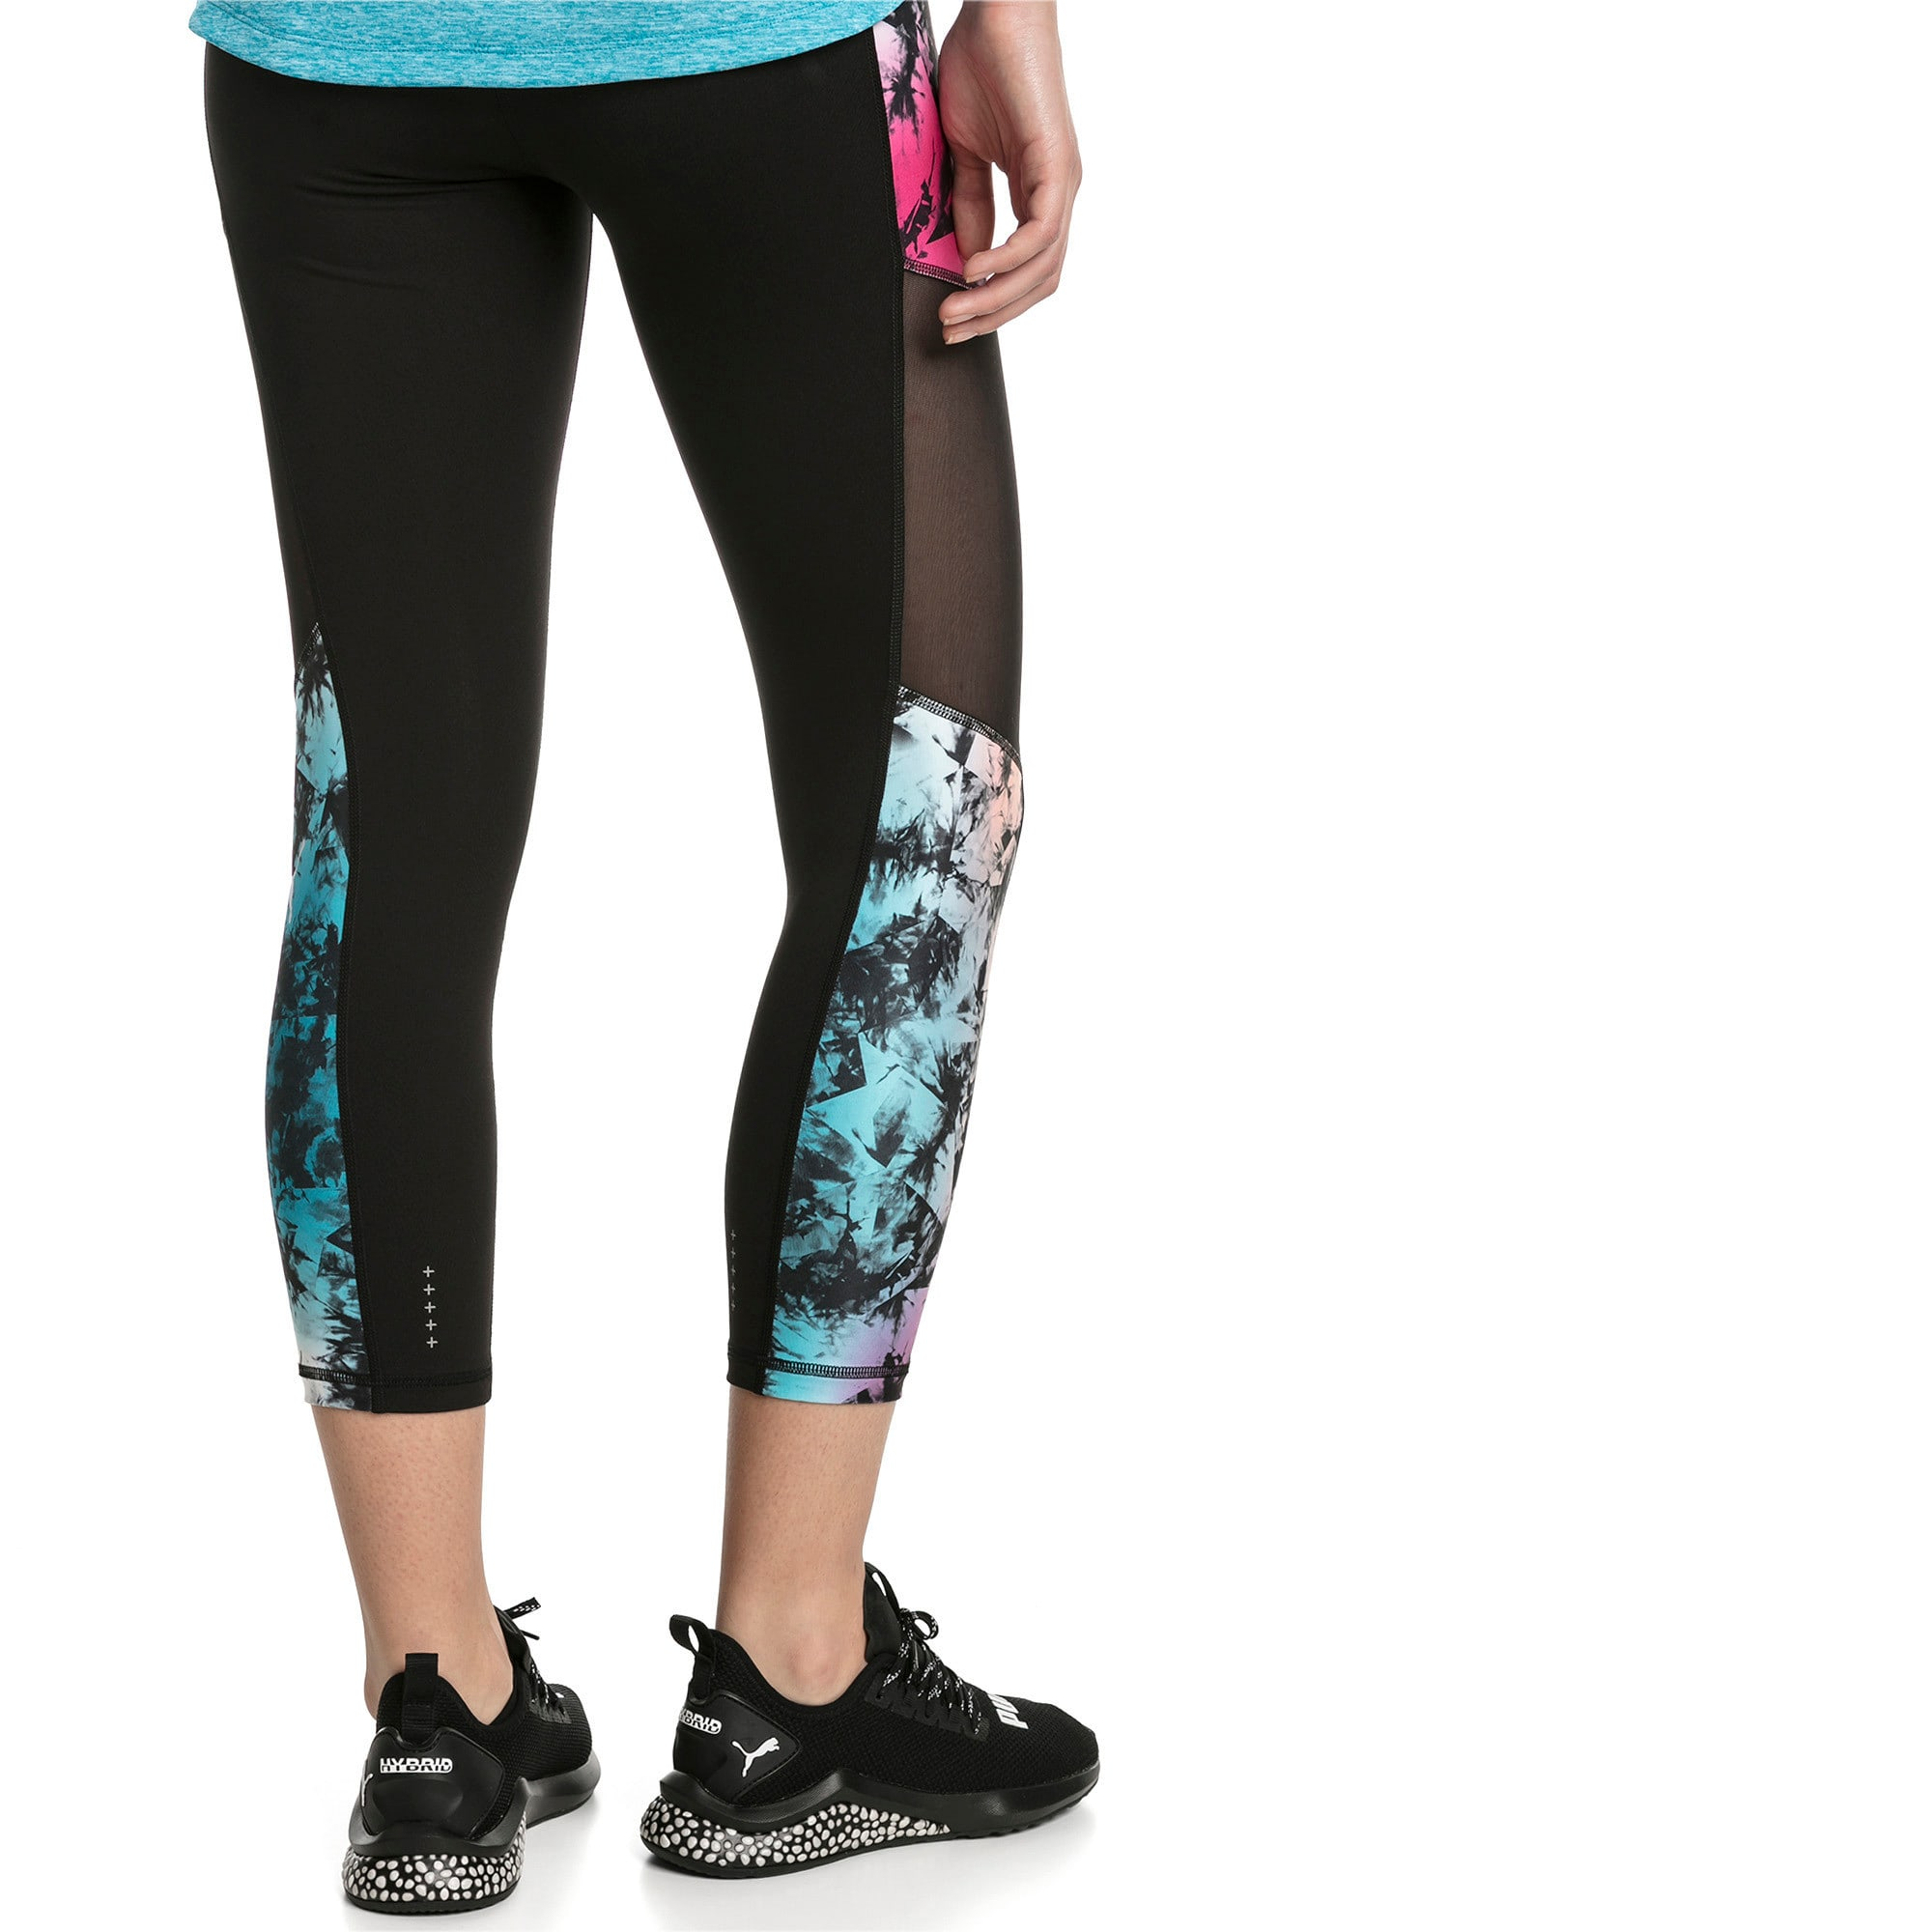 Thumbnail 2 of Ignite 3/4 Graphic Women's Tights, Puma Black-Multi-Q2 Print, medium